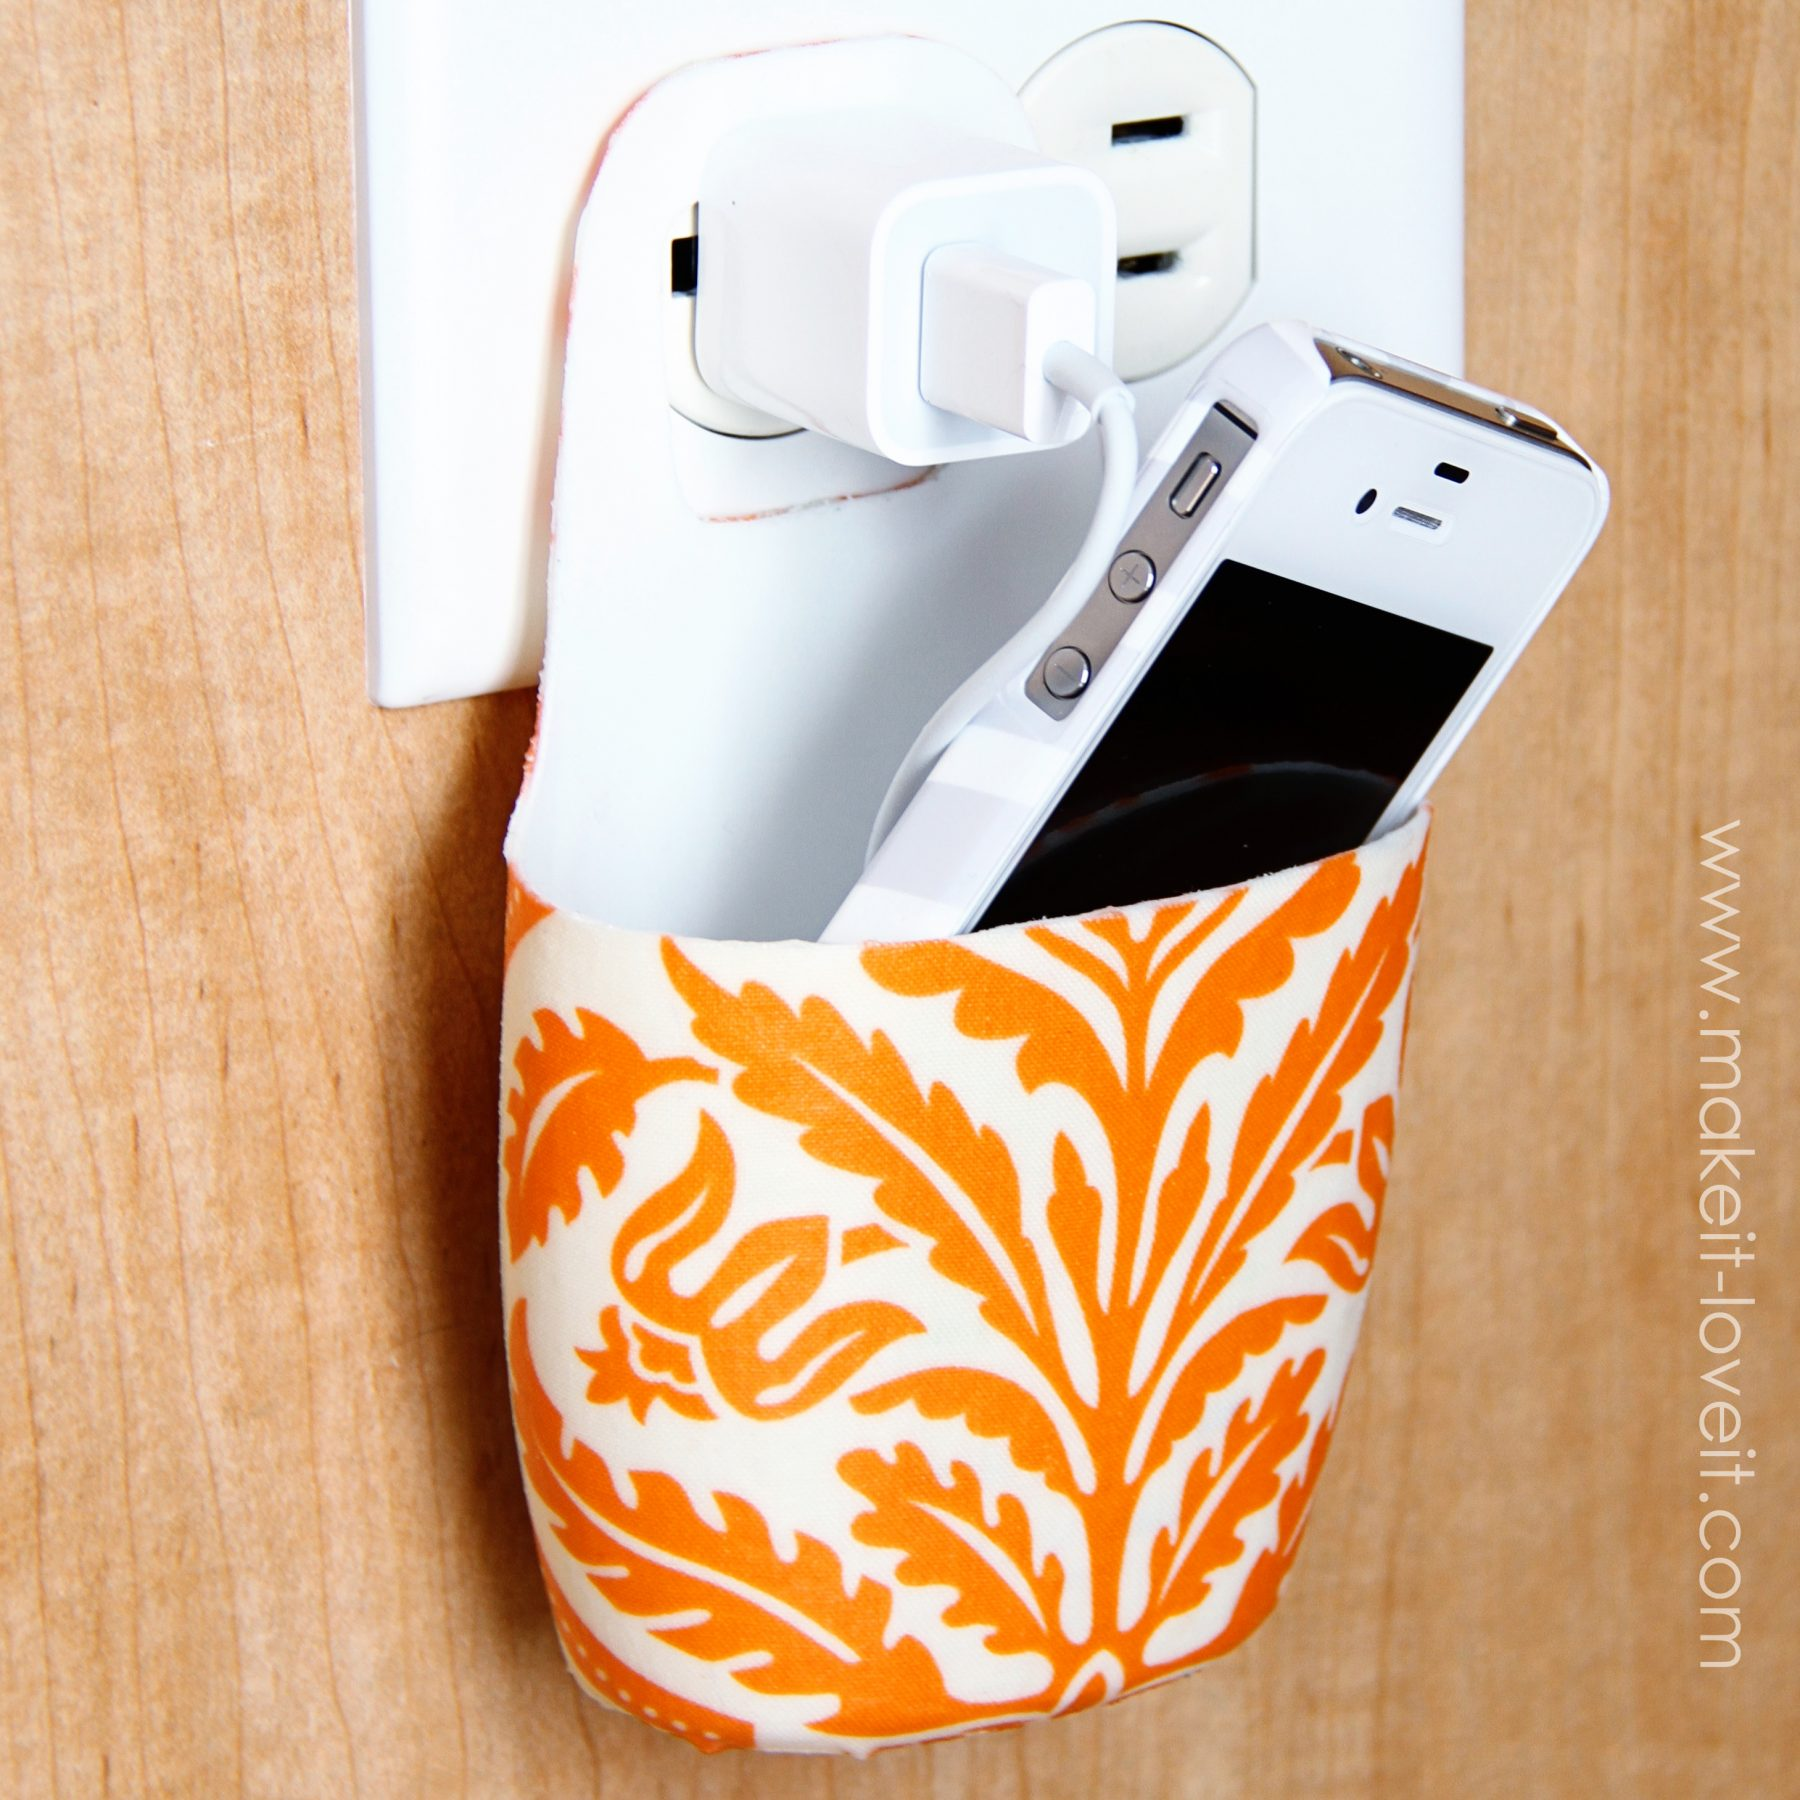 Holder For Charging Cell Phone Made From Lotion Bottle Make It Diy Home Improvement Pinterest Electrical Wiring And Love